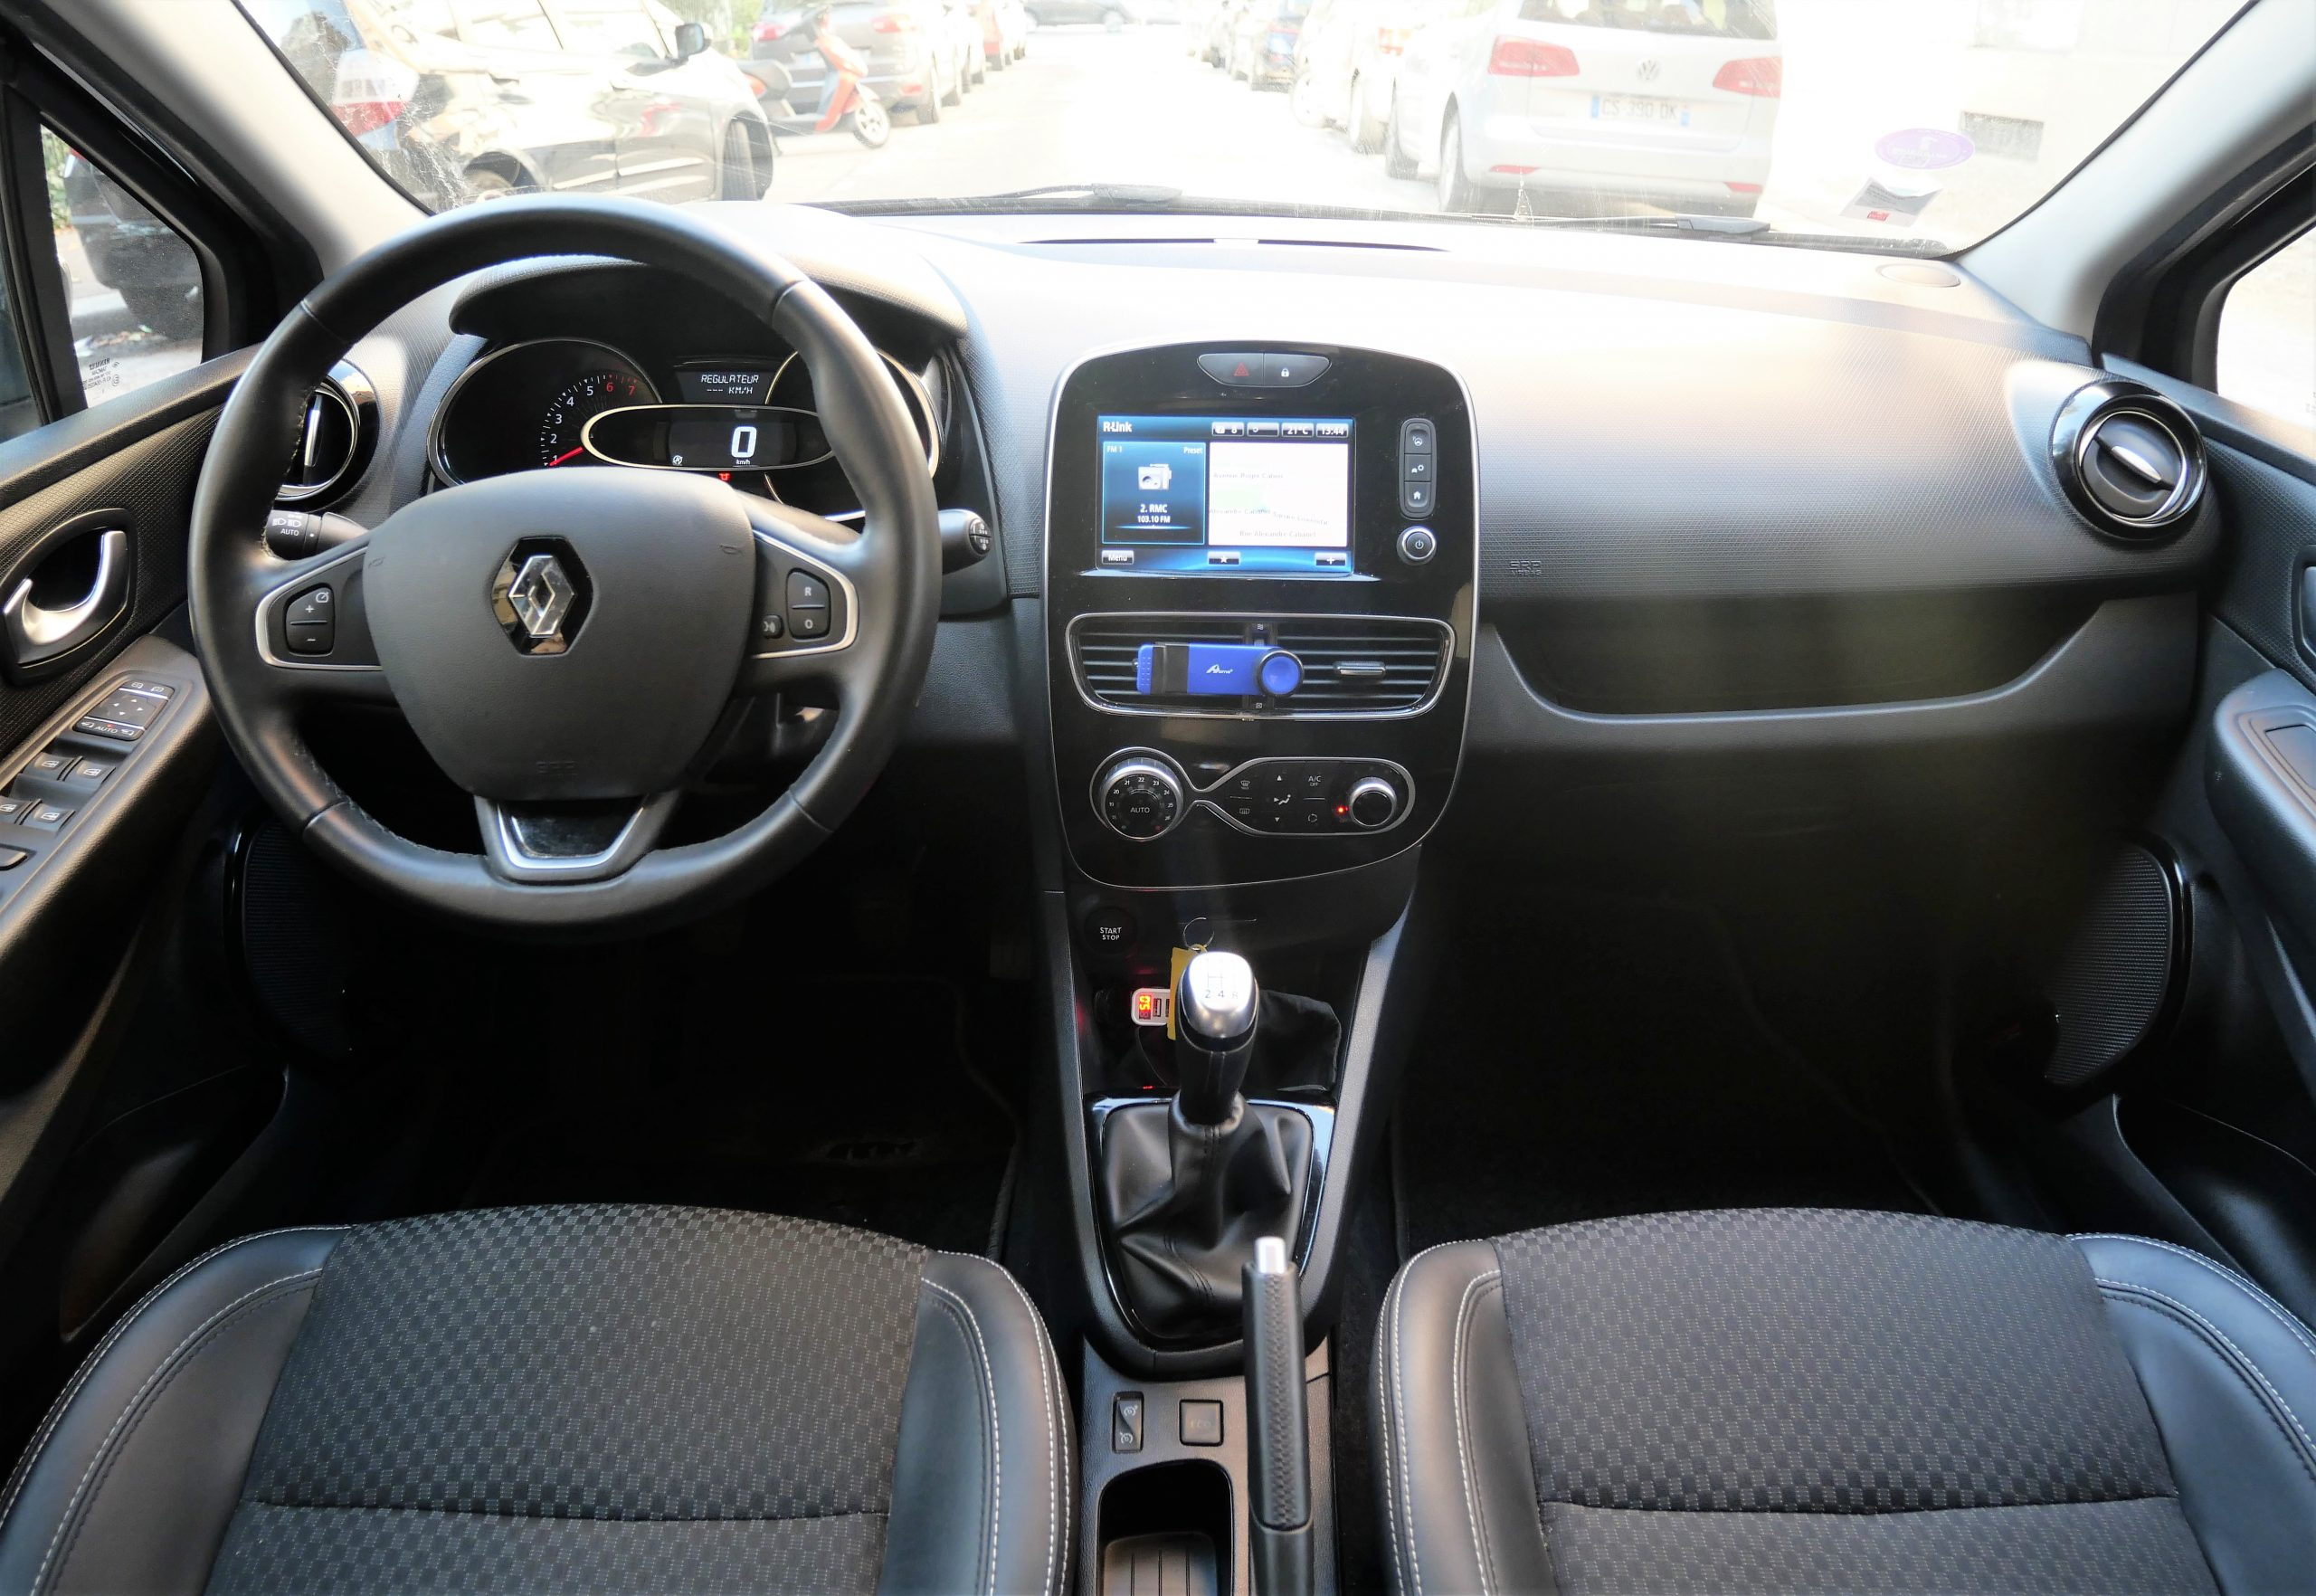 RENAULT Clio IV INTENS Phase 2 0.9 TCe 90 ch 12